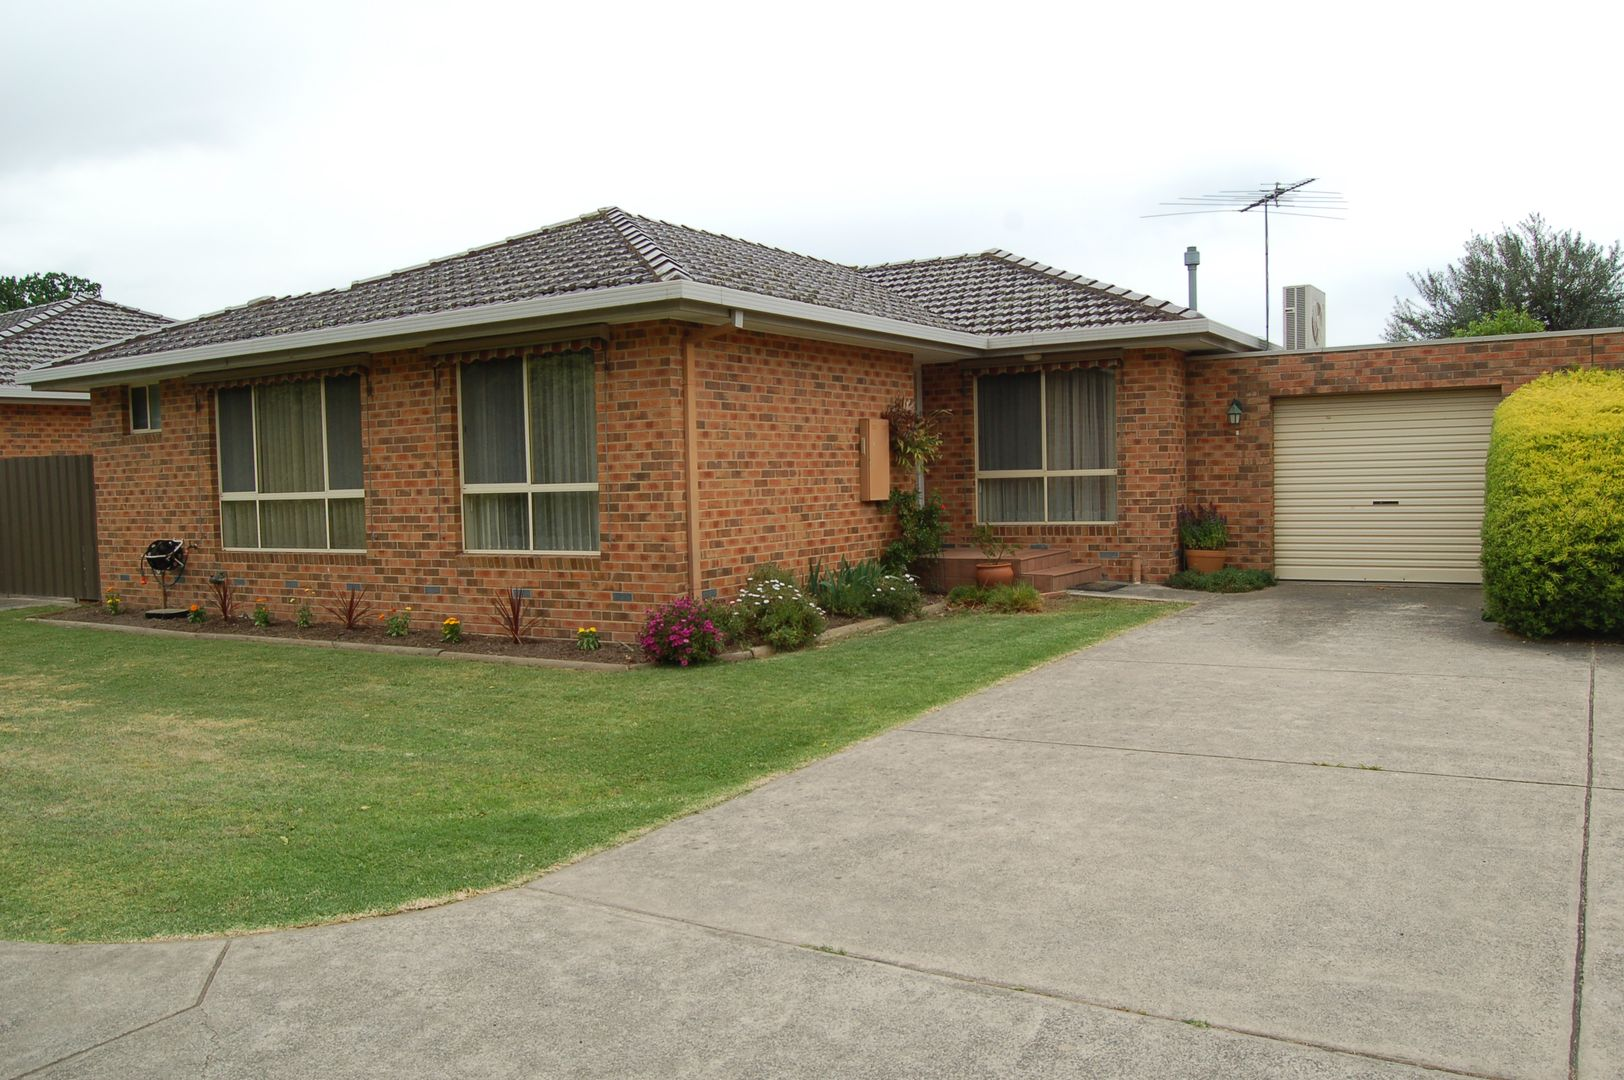 Unit 2/38 FOREST STREET, Whittlesea VIC 3757, Image 0